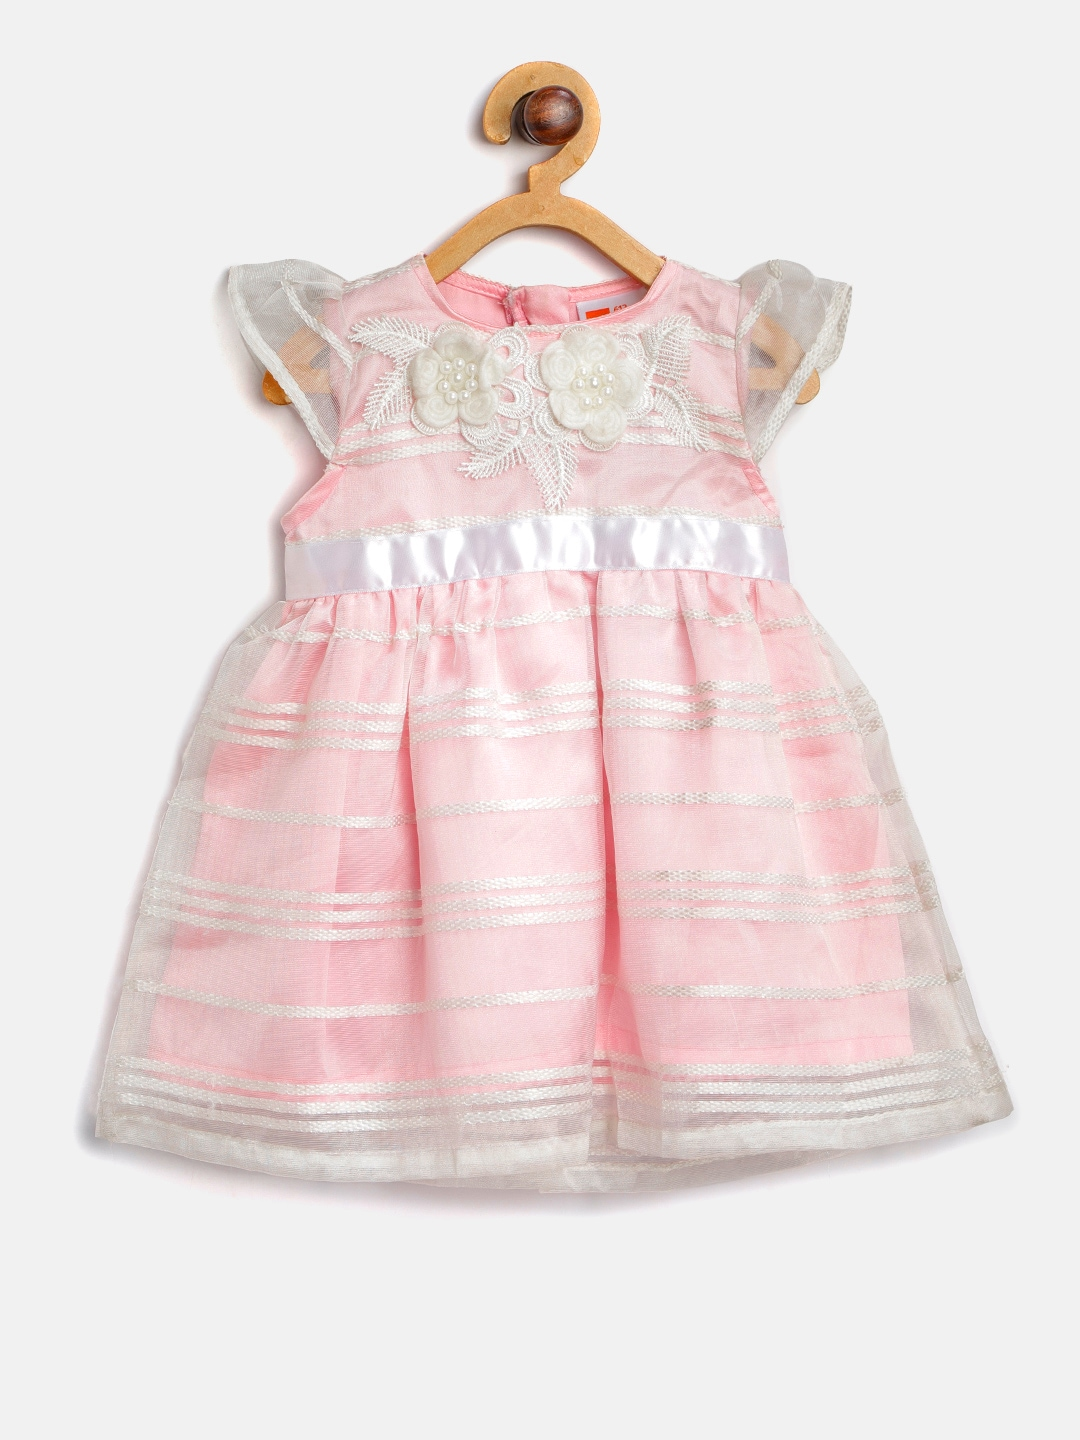 8f9e6ec66d9 Baby Dresses - Buy Dress for Babies Online at Best Price